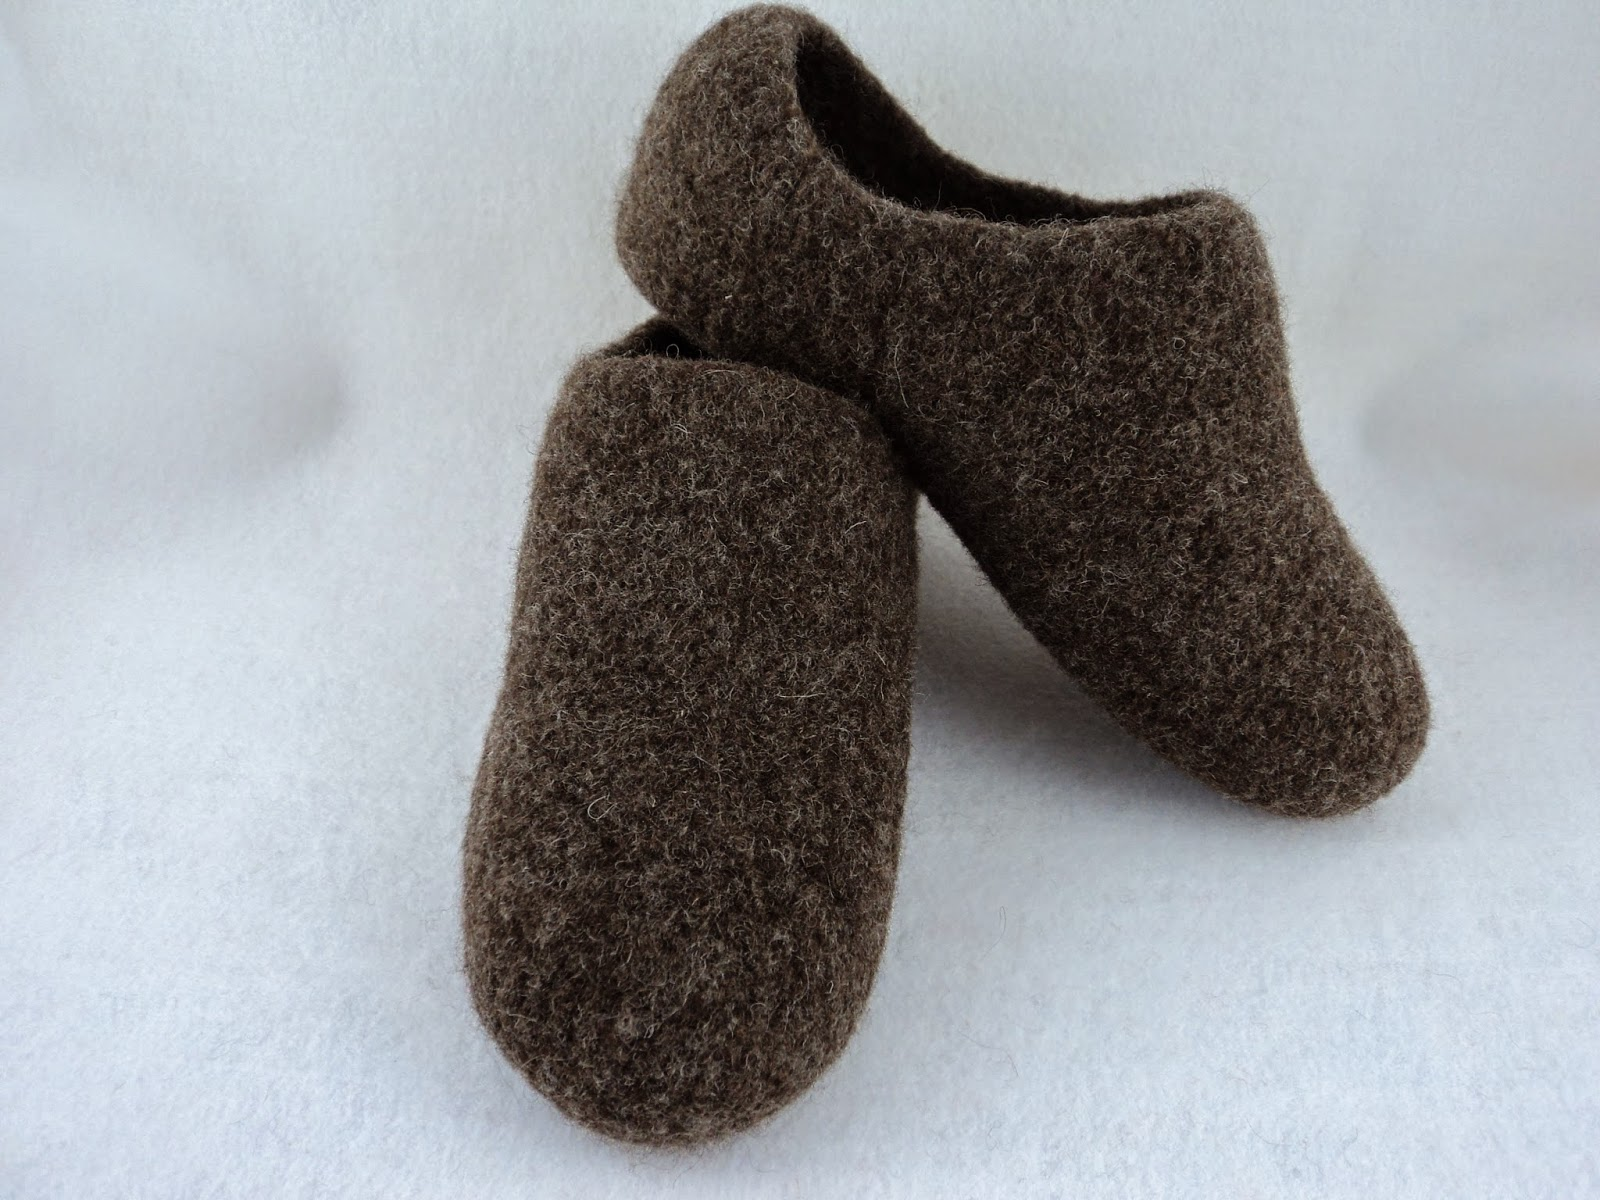 Felted Slippers Knitting Pattern : moniqueraedesigns: Felted Slipper Pattern Improved!